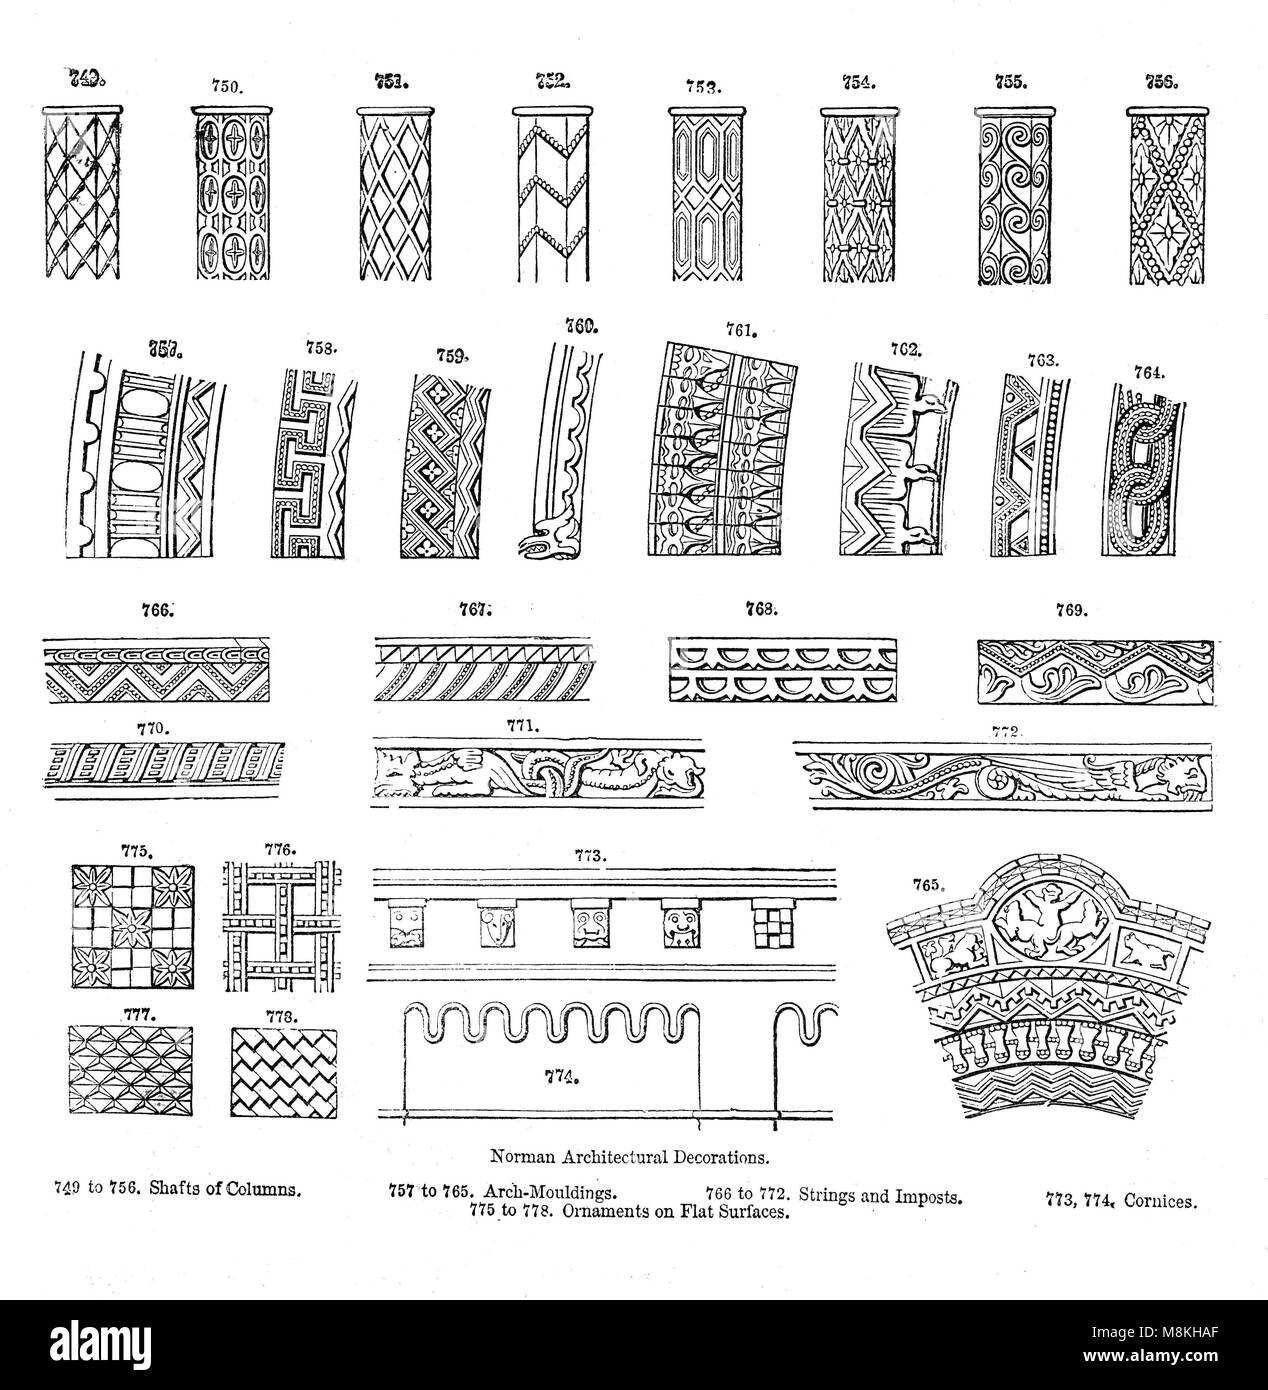 An architectural drawing of Norman Romanesque decoration. The style was instigated by William the Conqueror from - Stock Image